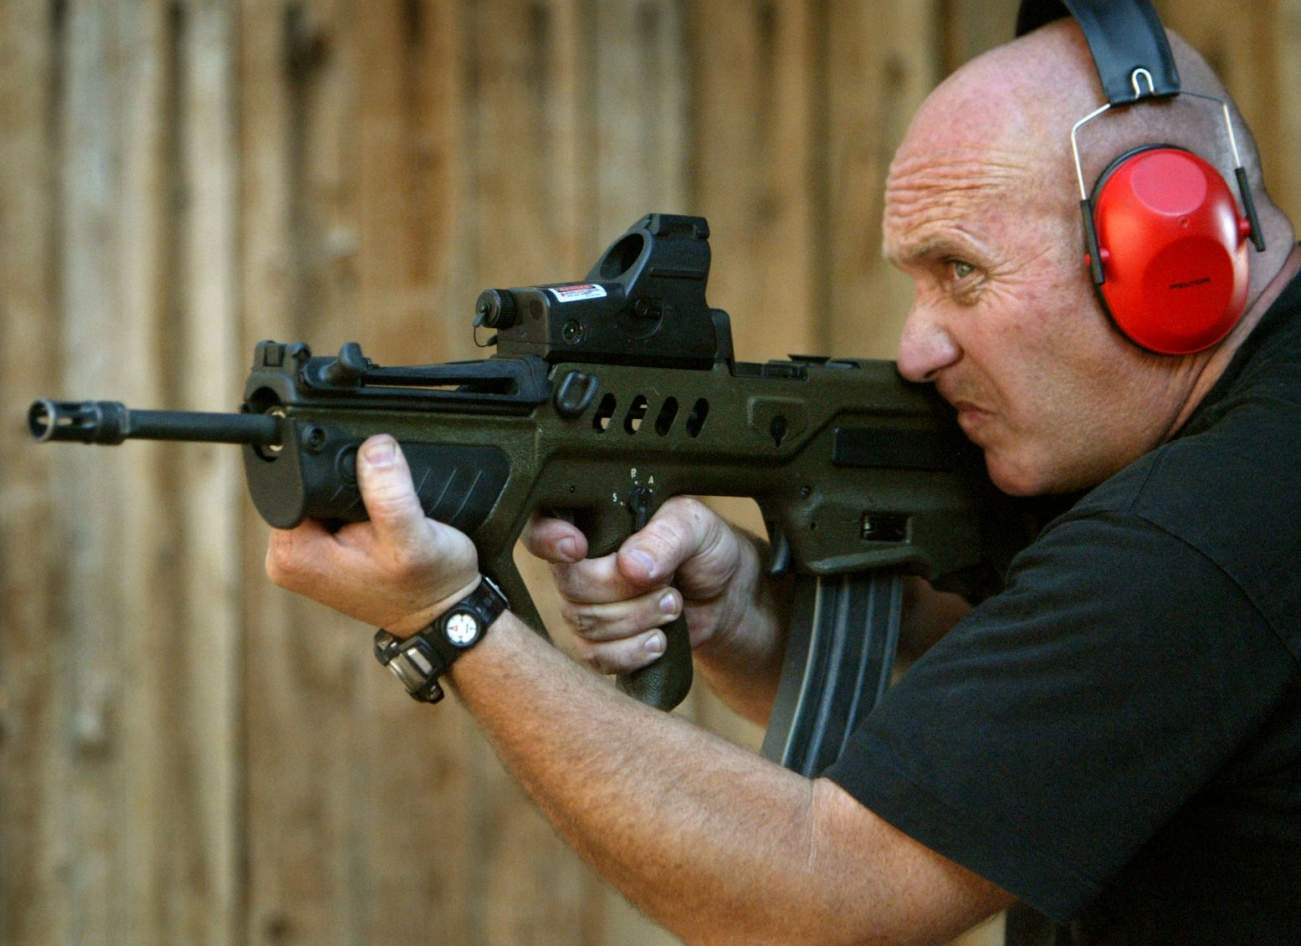 Meet the Tavor: Israel's Beast Rifle That Fires 800 Rounds a Minute